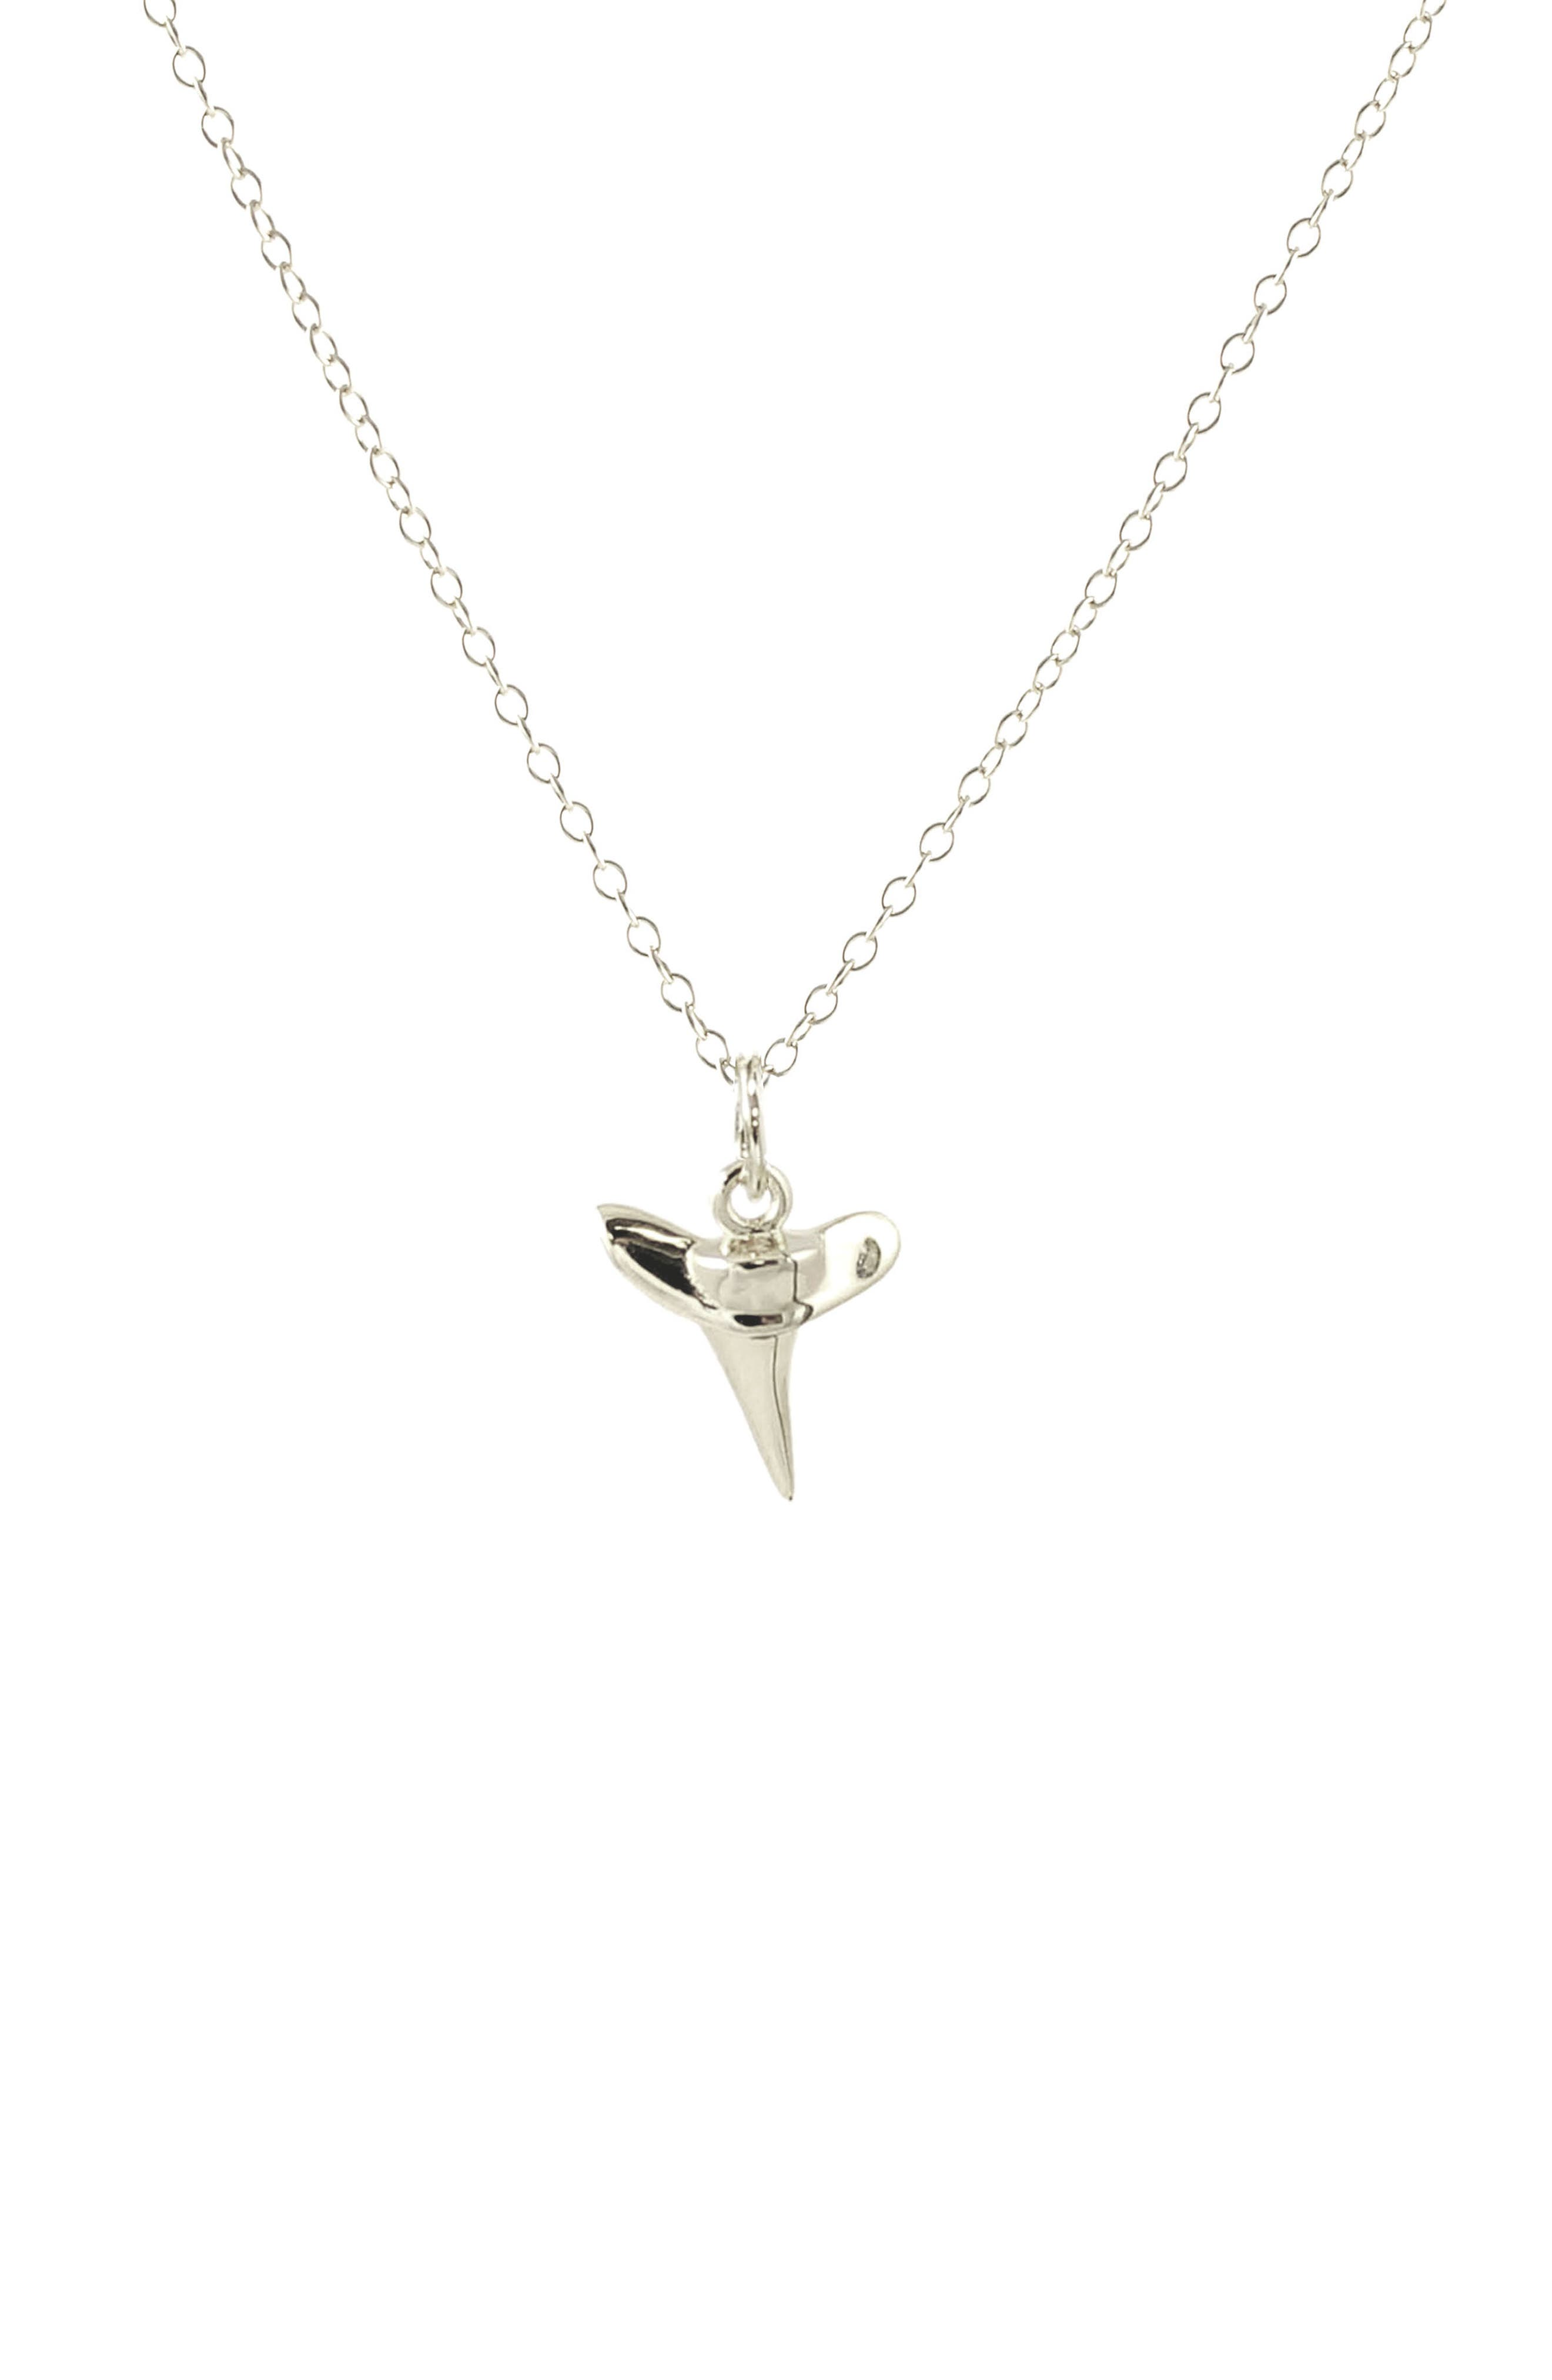 Shark Tooth Pendant Necklace,                         Main,                         color, Silver